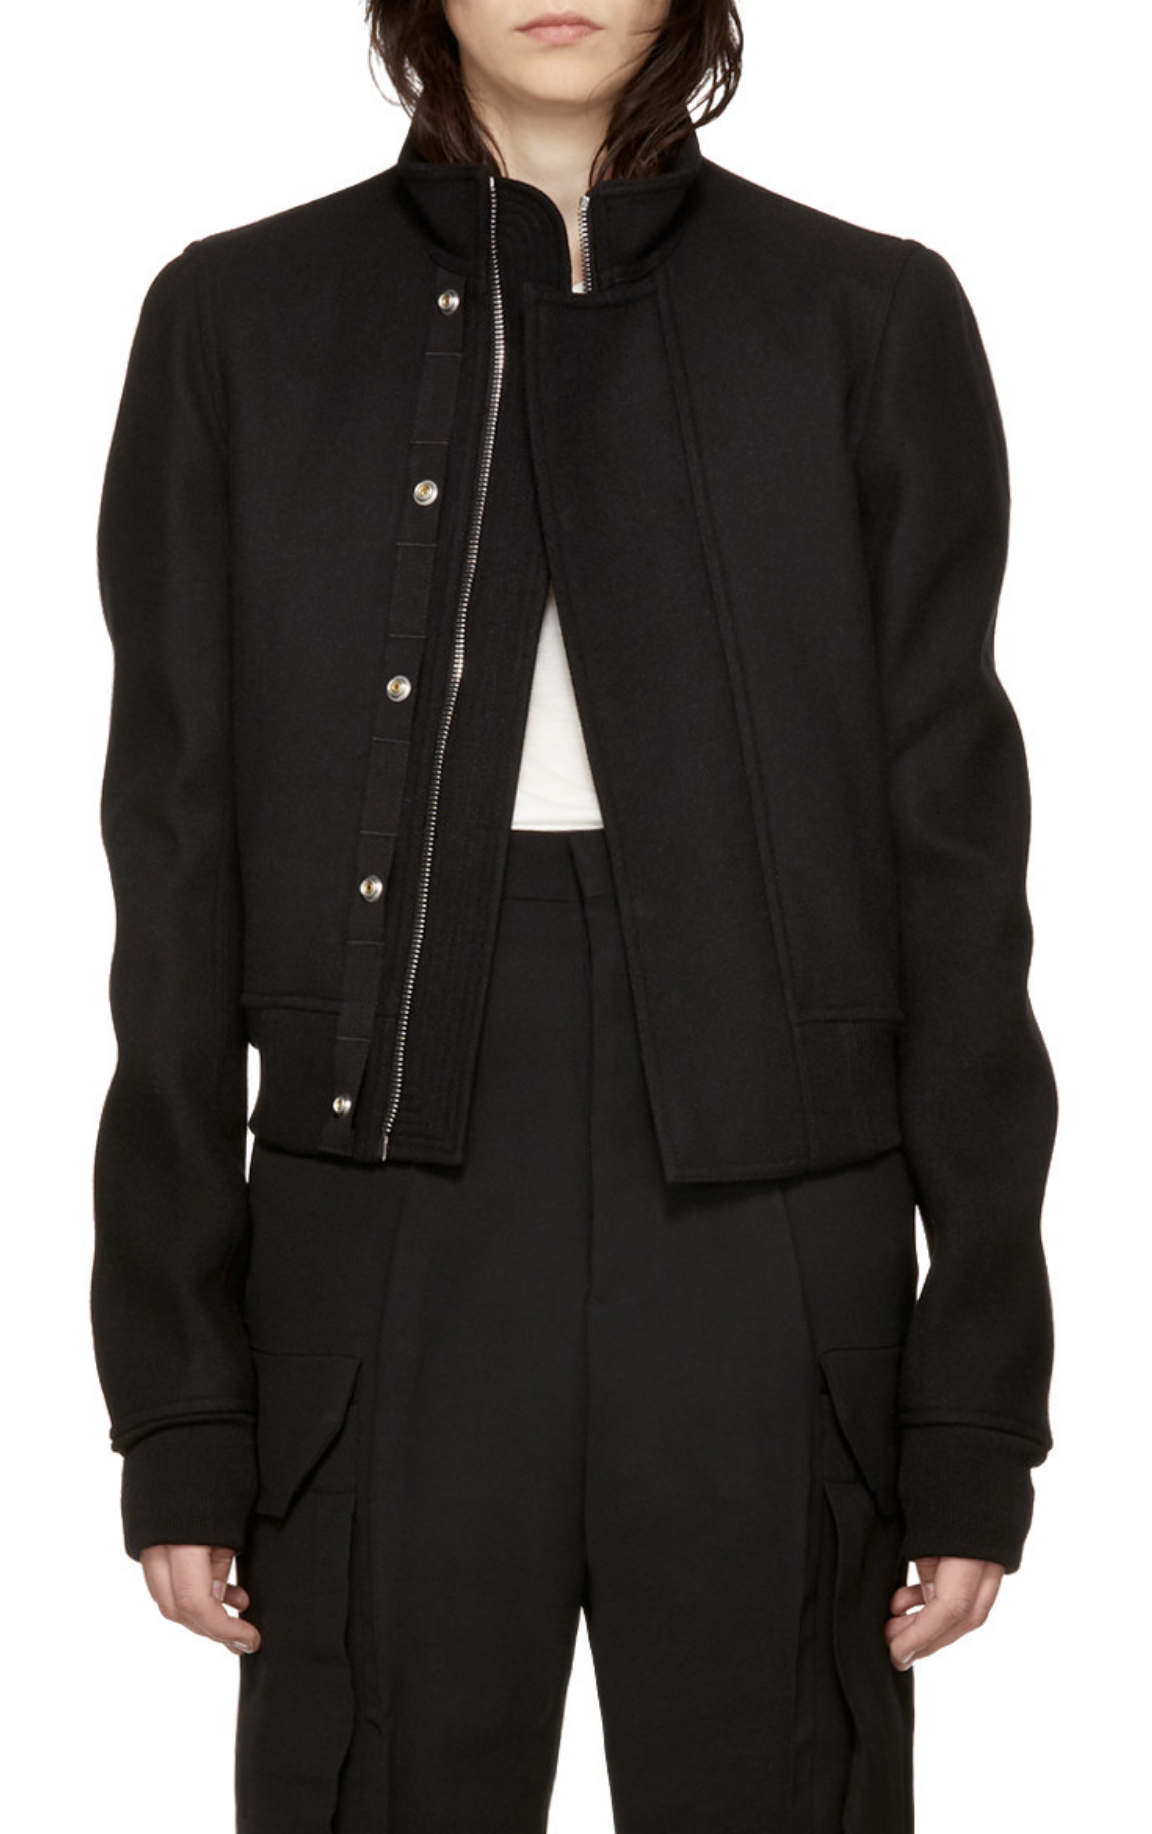 Rick Owens Black Glitter Egon Jacket from SSENSE (men, style, fashion, clothing, shopping, recommendations, stylish, menswear, male, streetstyle, inspo, outfit, fall, winter, spring, summer, personal)